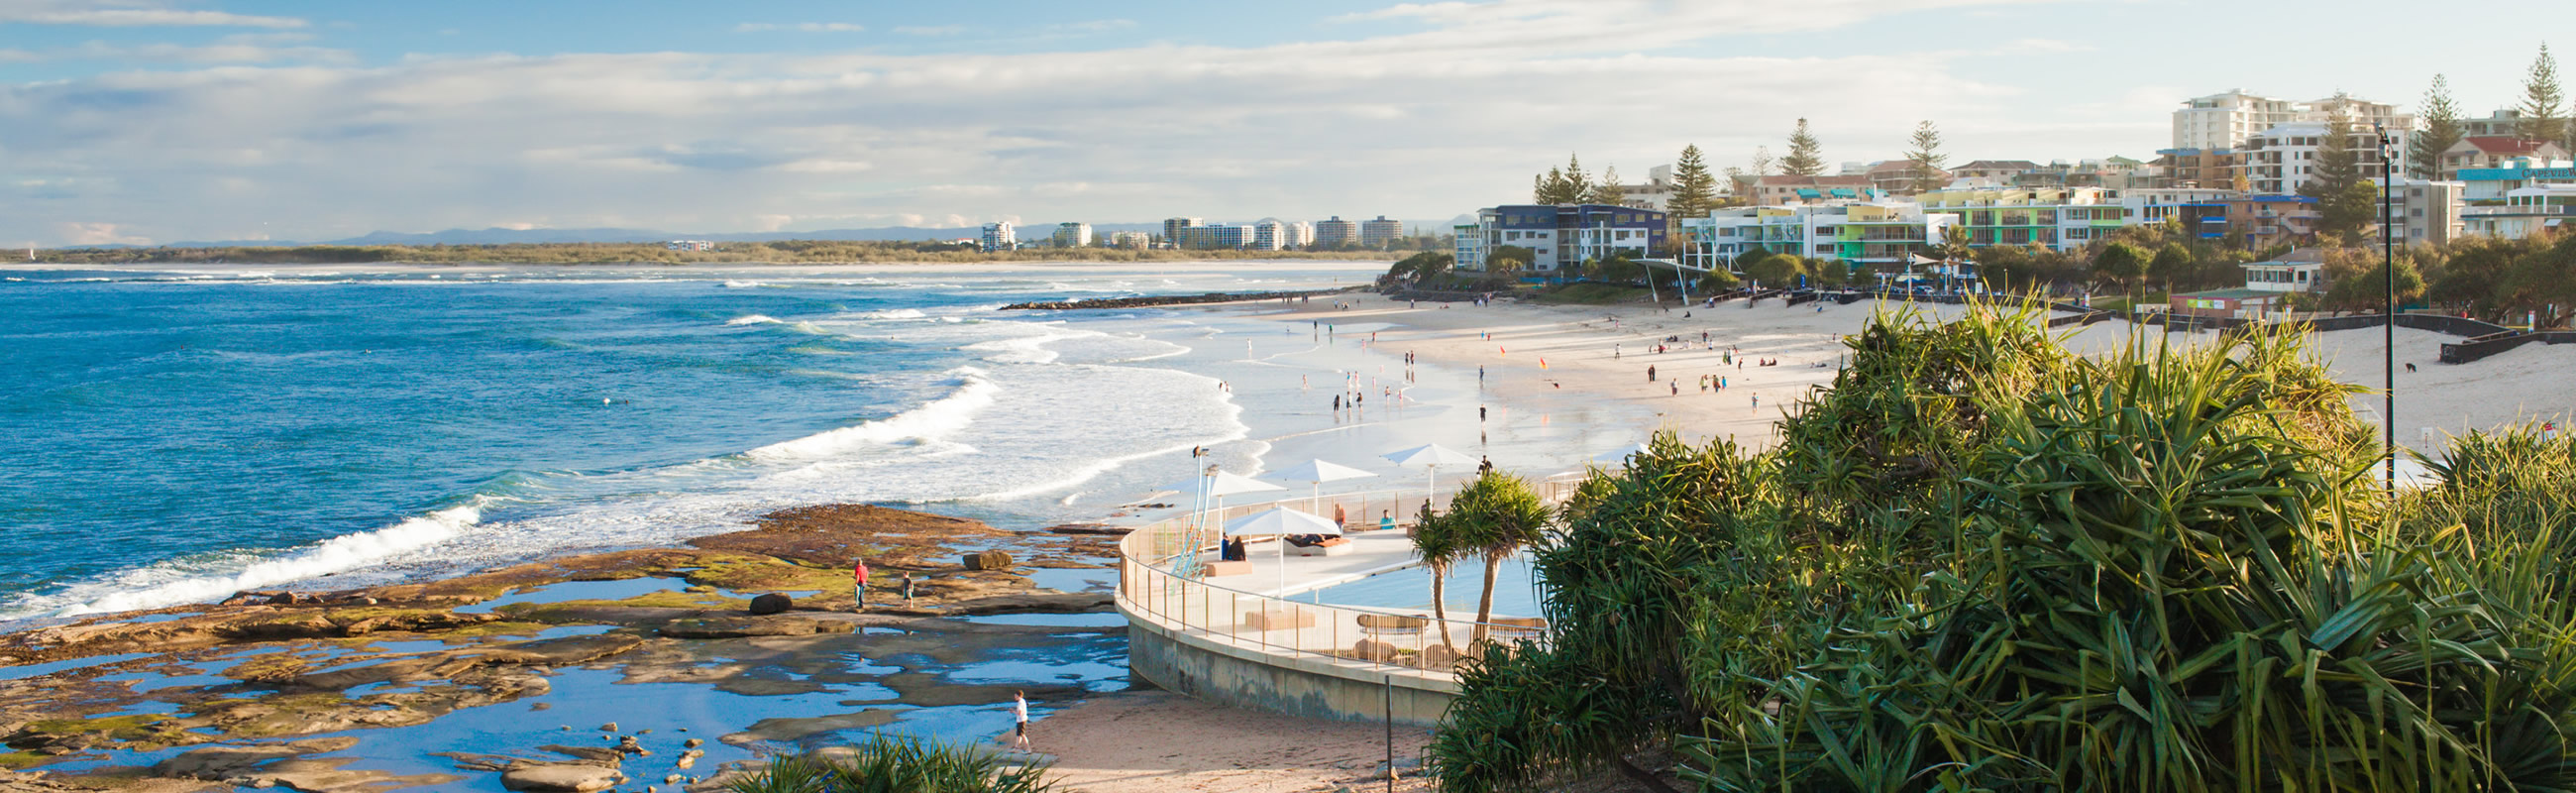 Things to do at Caloundra on the Sunshine Coast